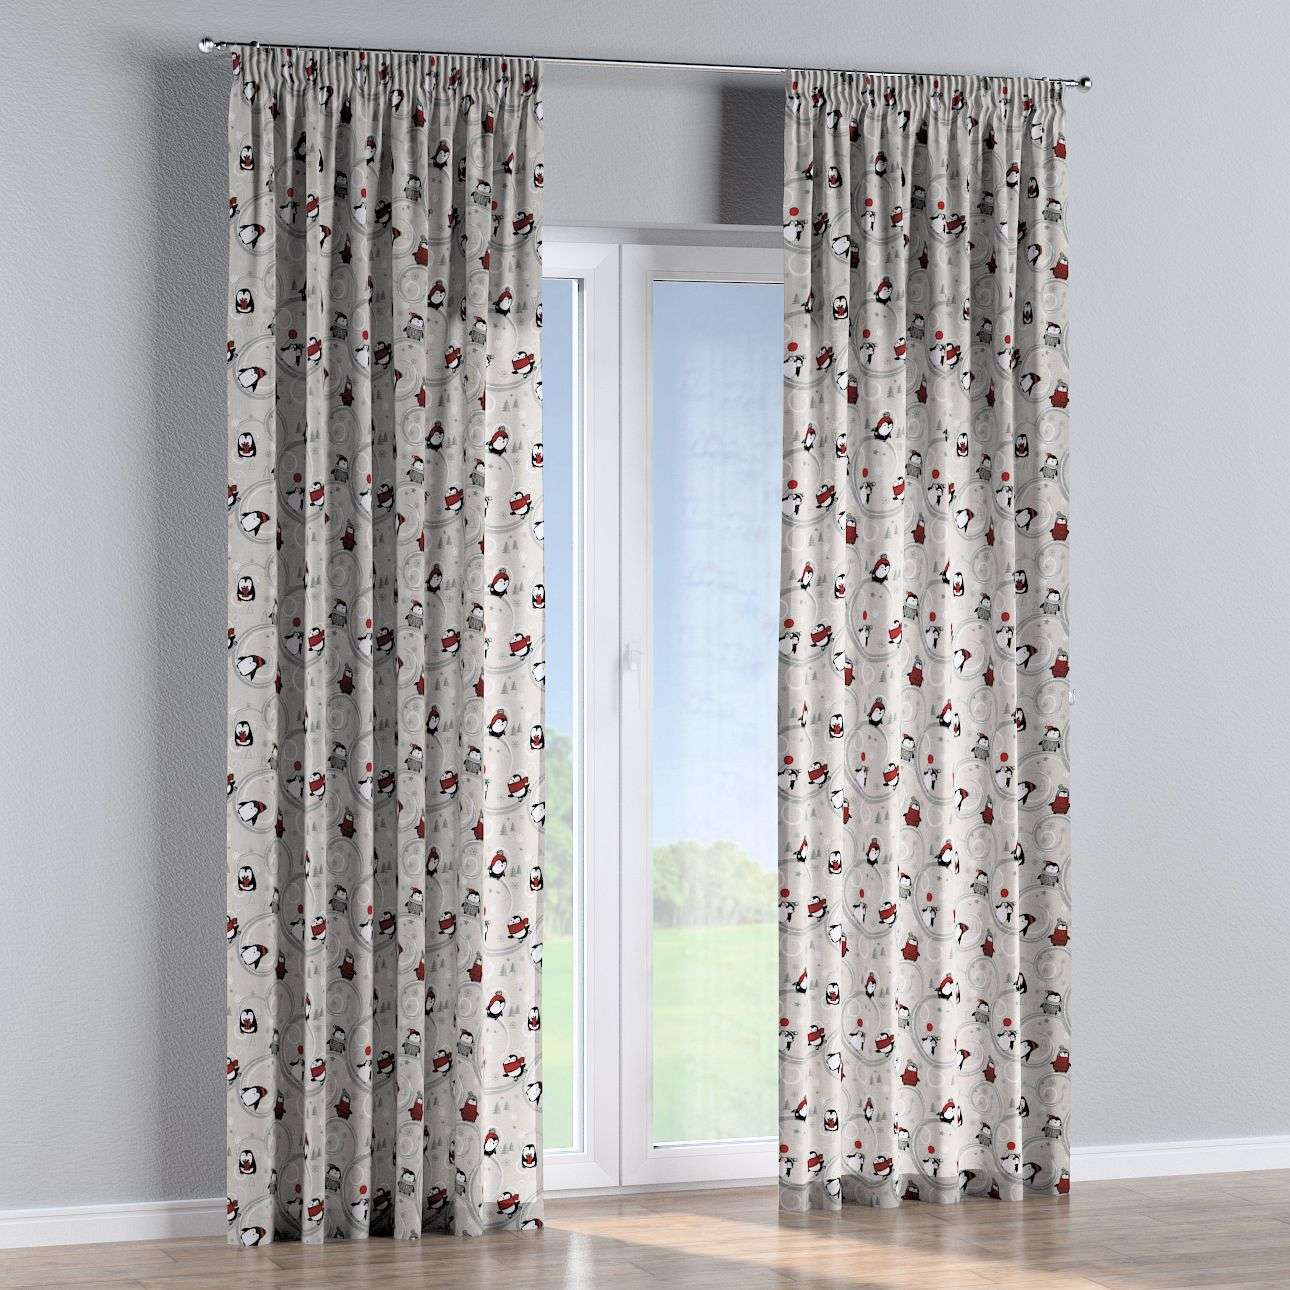 Pencil pleat curtains 130 x 260 cm (51 x 102 inch) in collection Christmas, fabric: 629-33